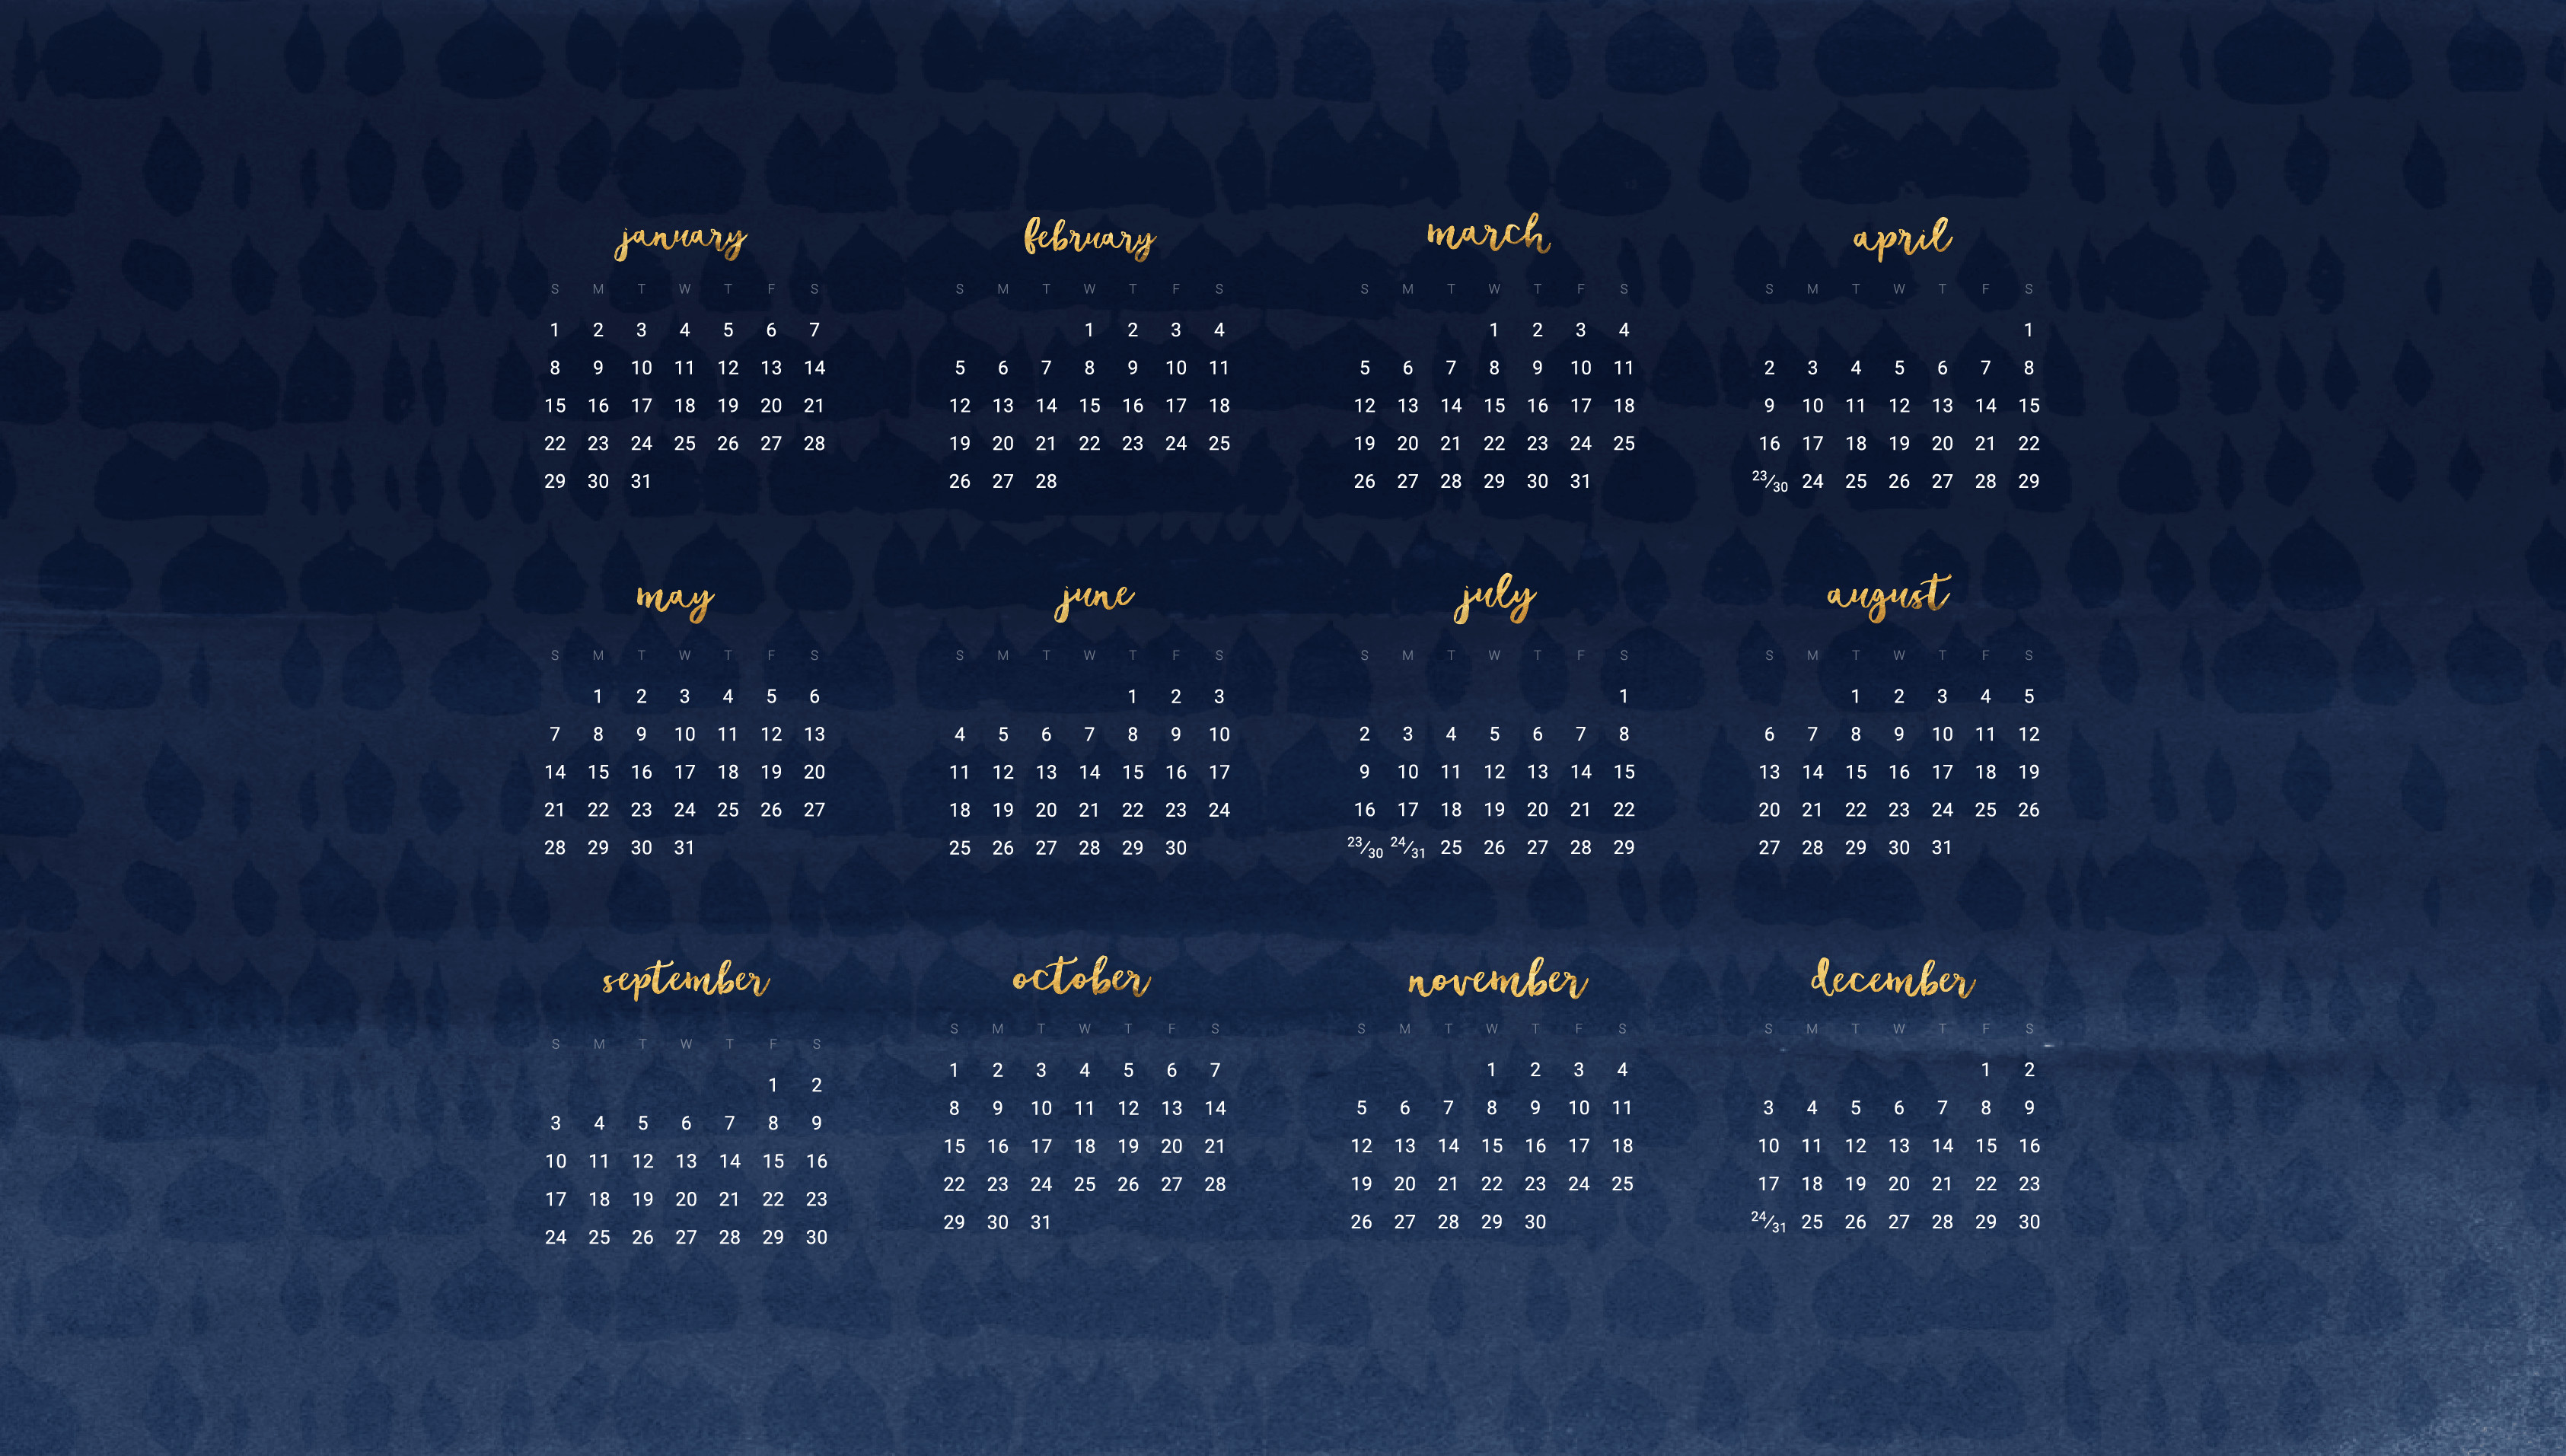 Calendar Computer Wallpaper : Wallpaper calendars for  images